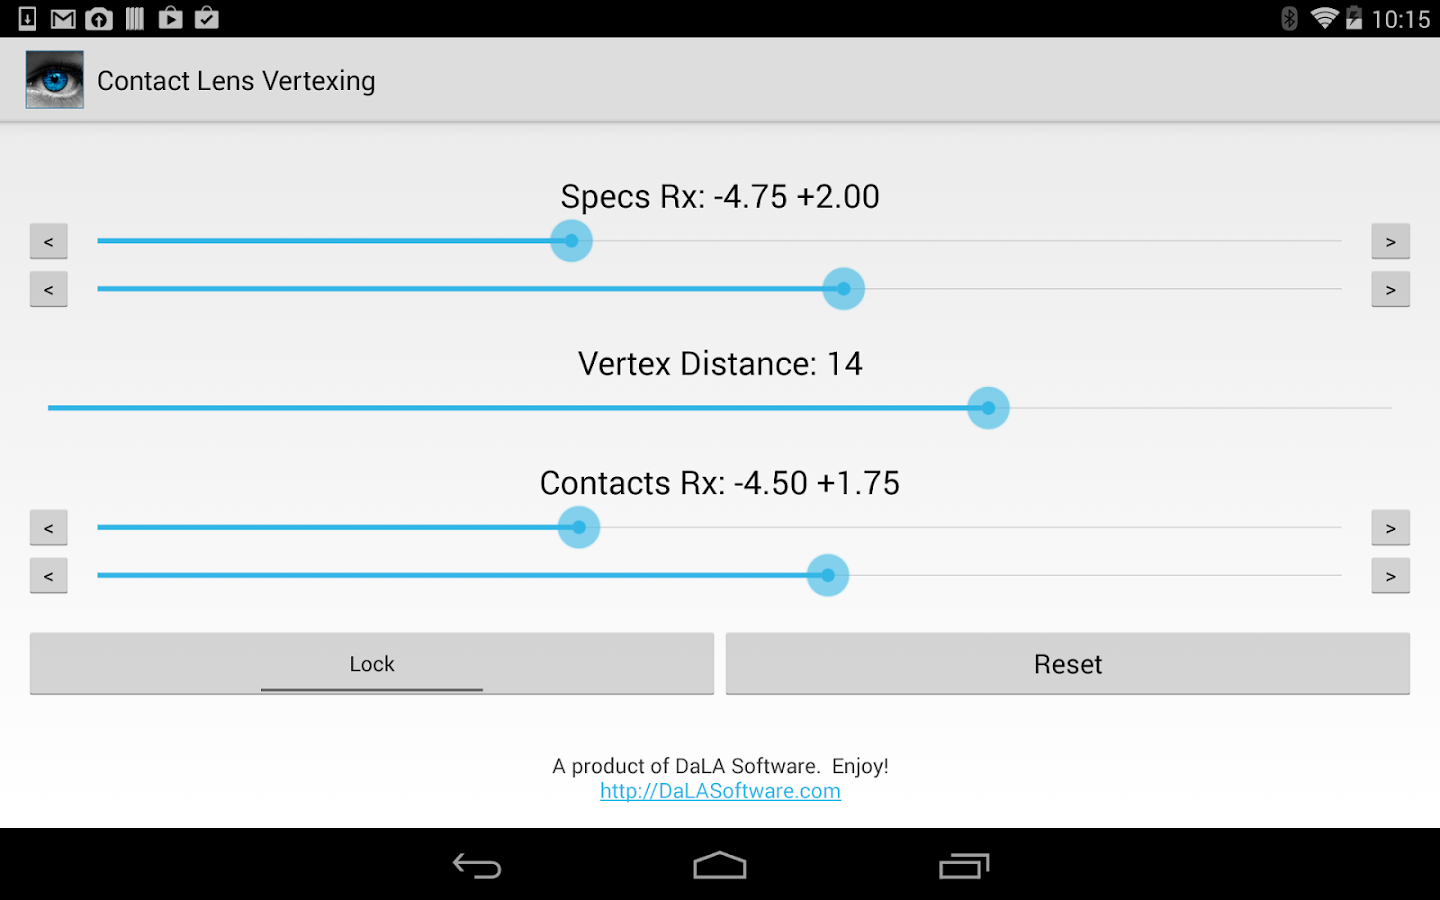 Contact lens vertexing android apps on google play contact lens vertexing screenshot nvjuhfo Image collections